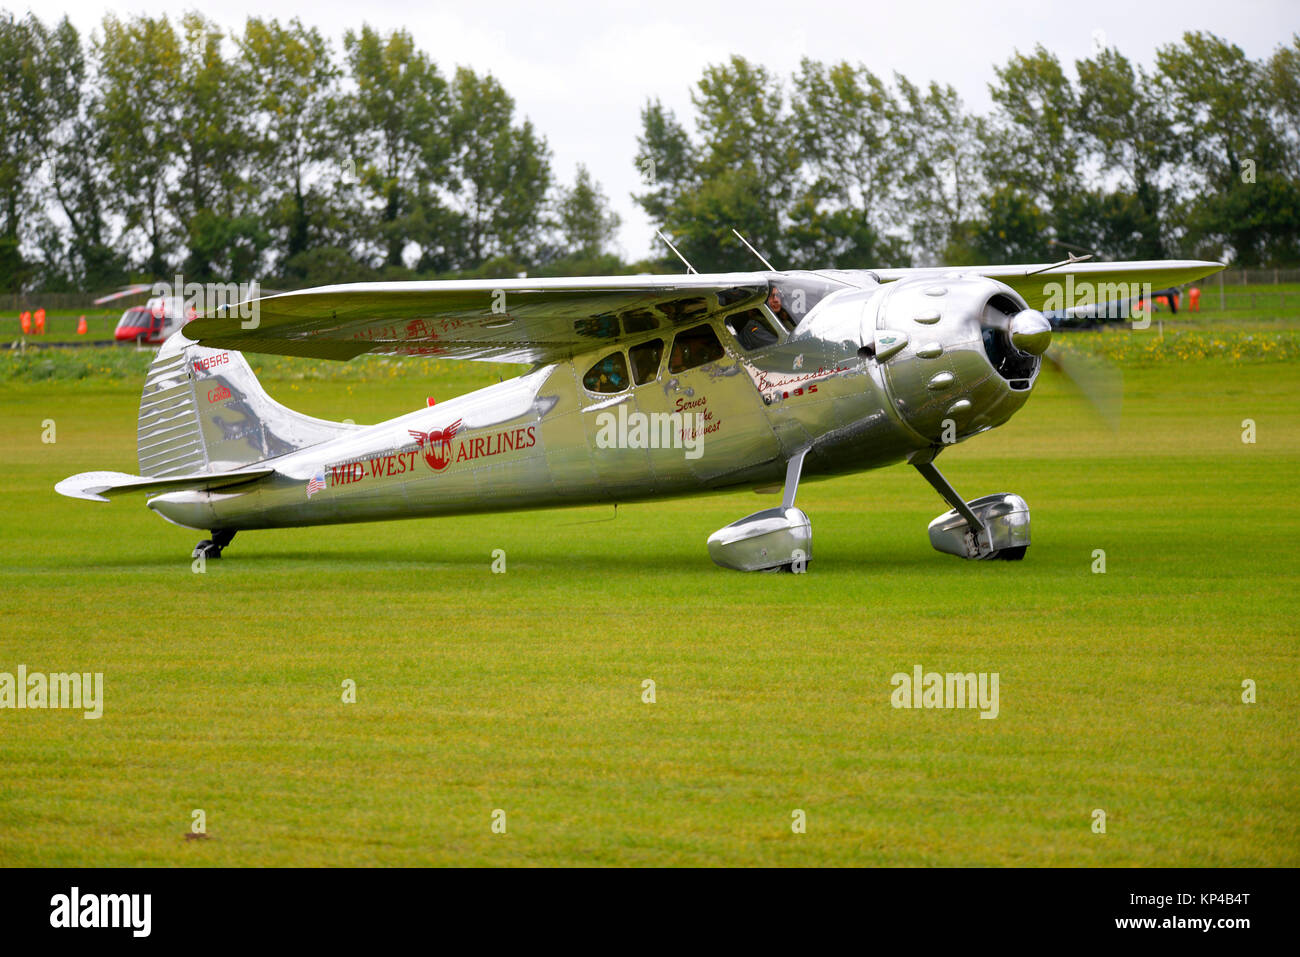 Cessna 195 Businessliner N195RS marked Mid West Airlines taxiing out at Goodwood Revival 2017 - Stock Image